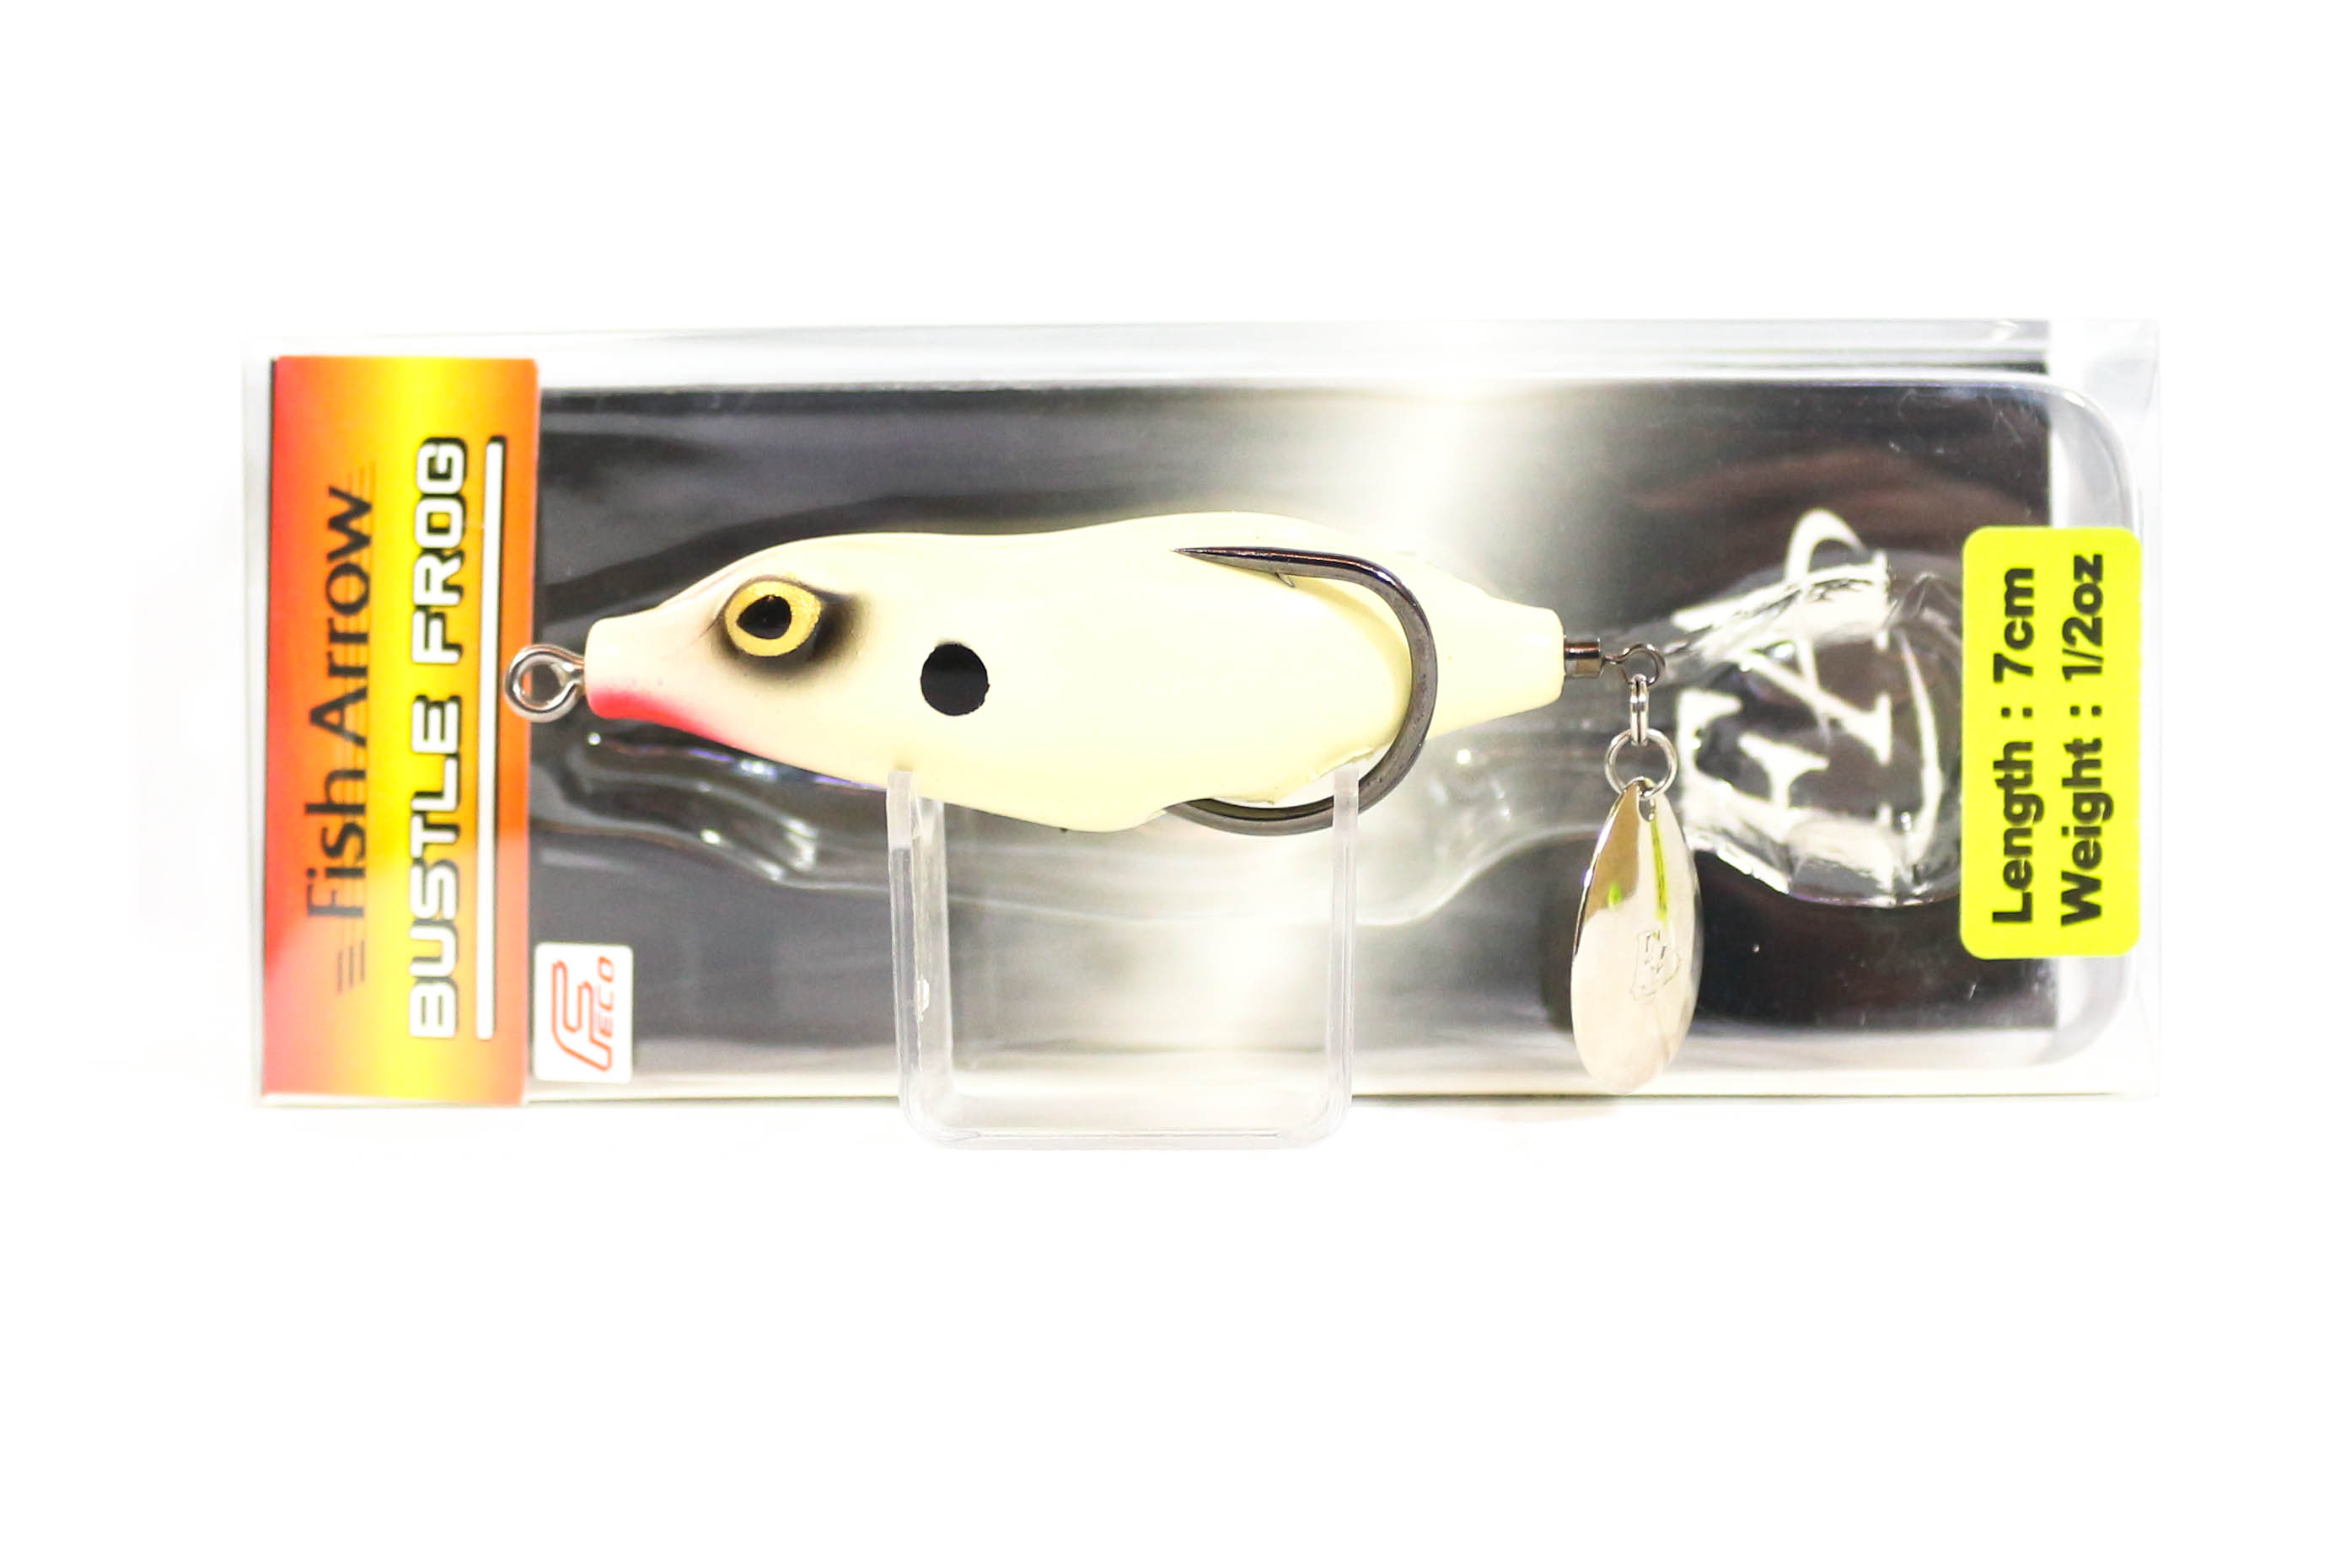 Fish Arrow Bustle Frog 7 cm 1/2 oz Soft Plastic Floating Lure 05 (4255)